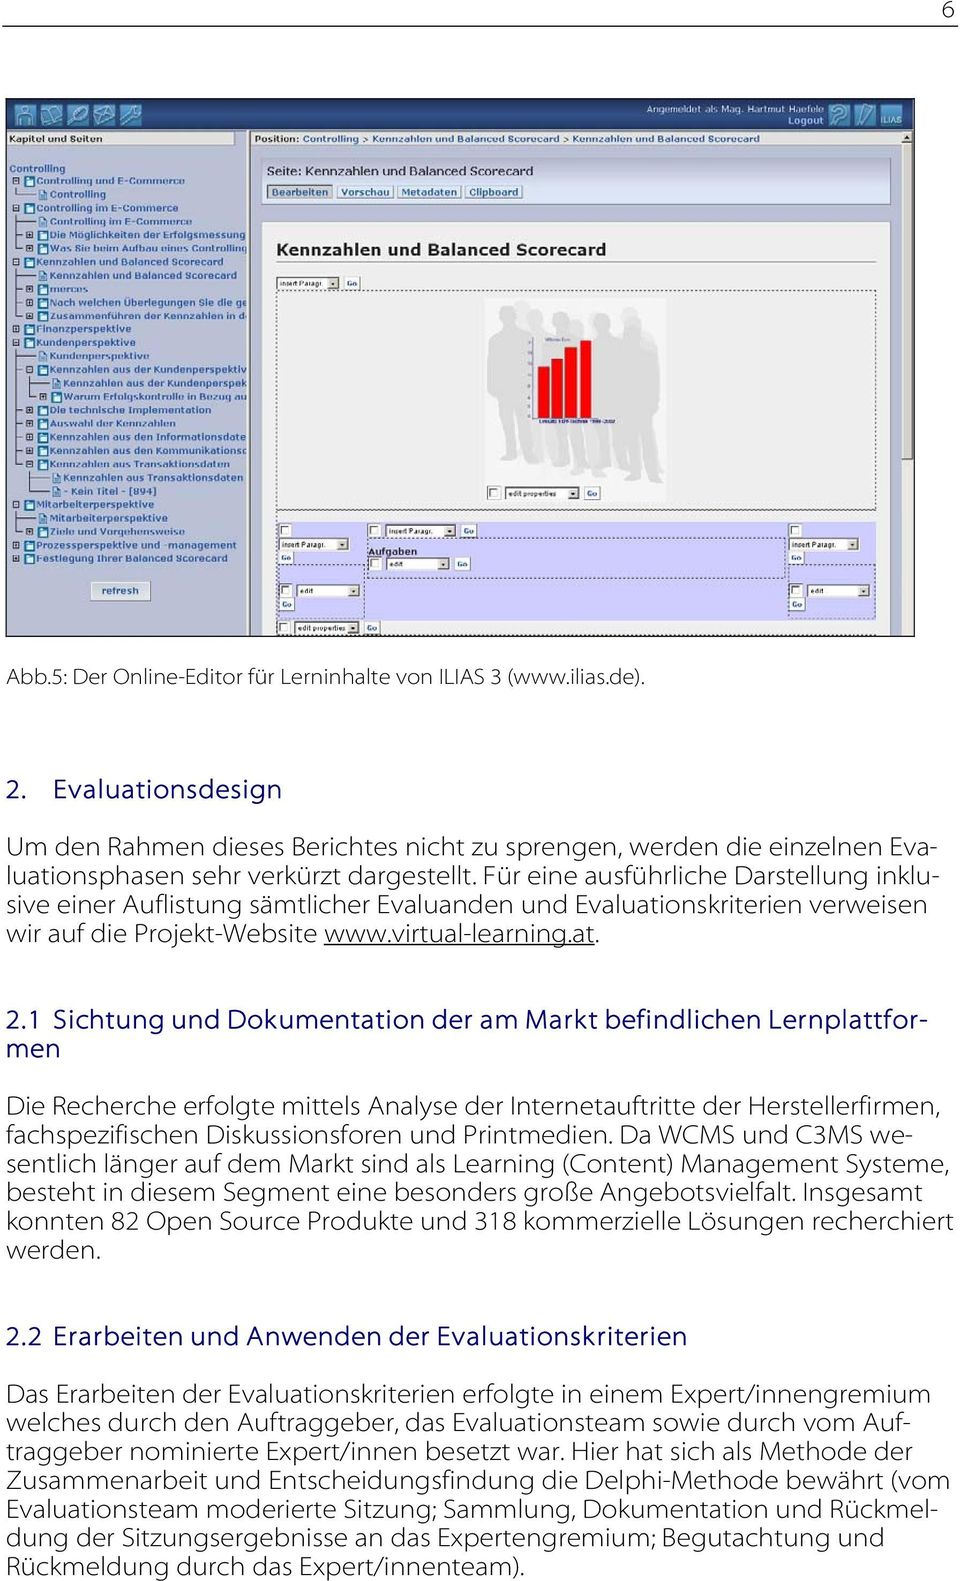 Für eine ausführliche Darstellung inklusive einer Auflistung sämtlicher Evaluanden und Evaluationskriterien verweisen wir auf die Projekt-Website www.virtual-learning.at. 2.